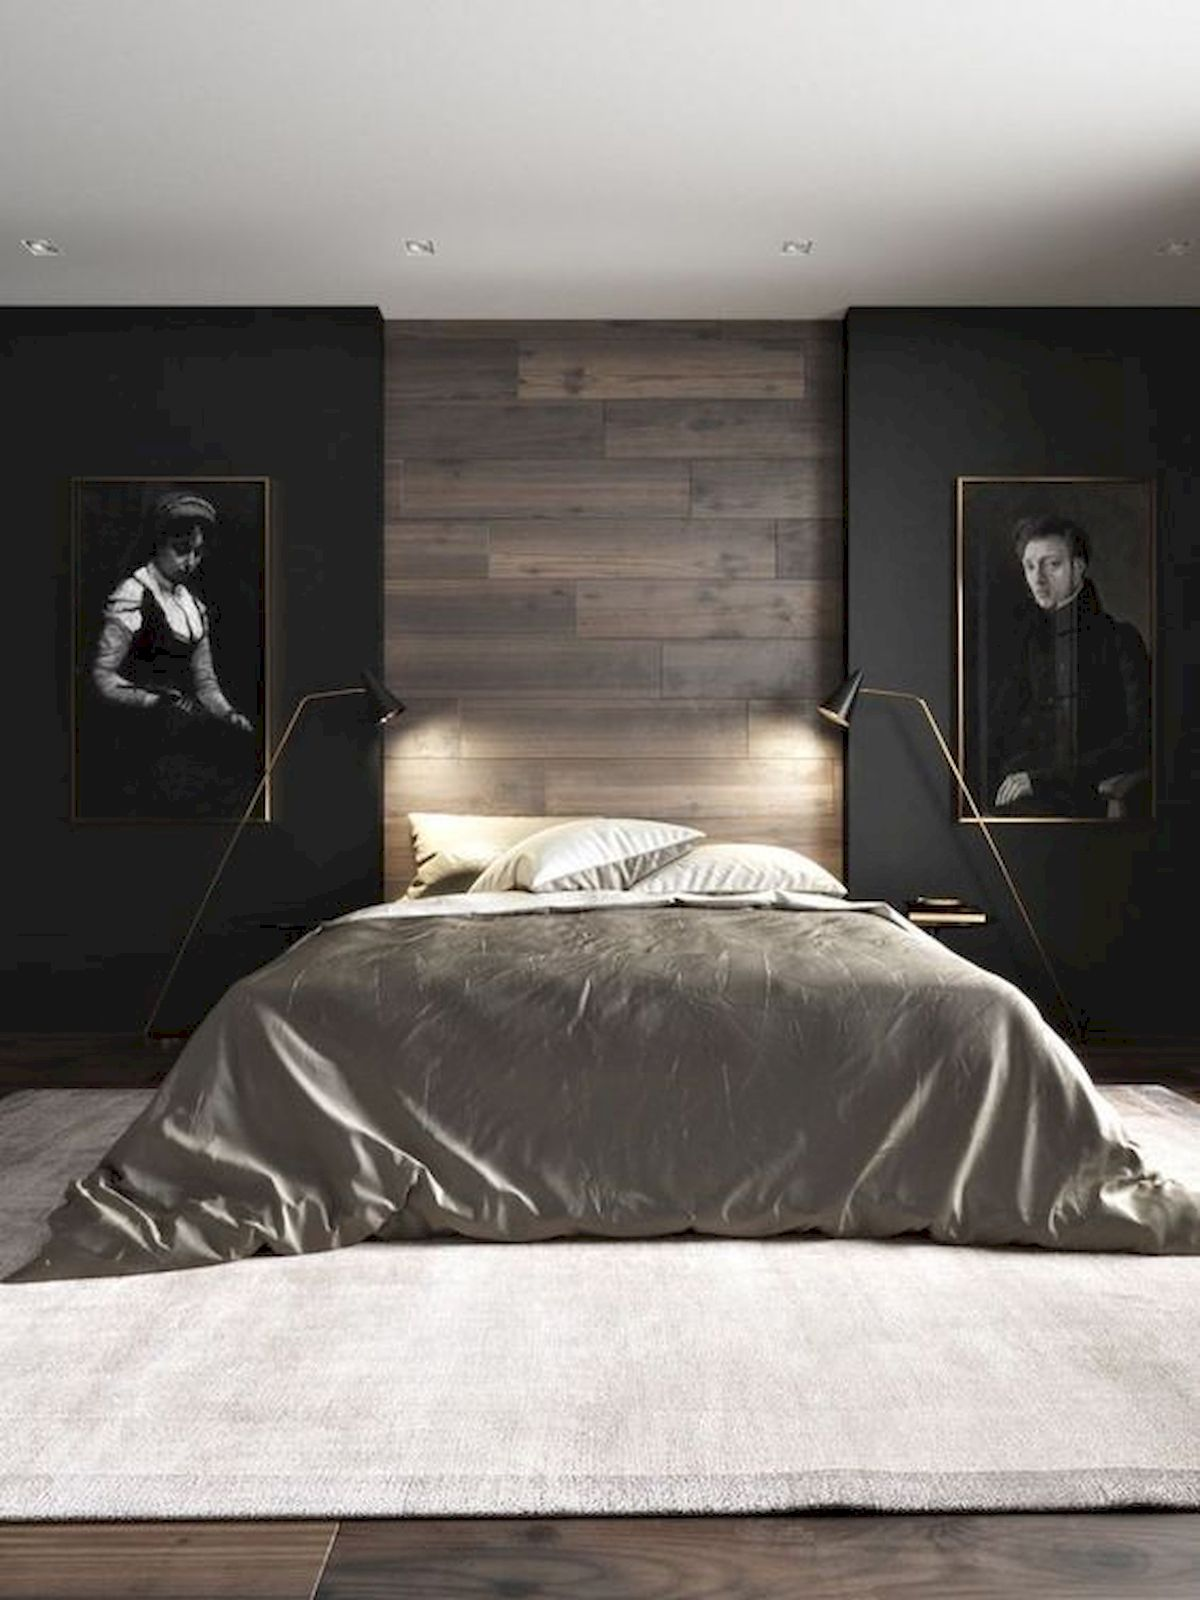 40 Incredible Modern Bedroom Design Ideas That Will Be Relax Place (18)